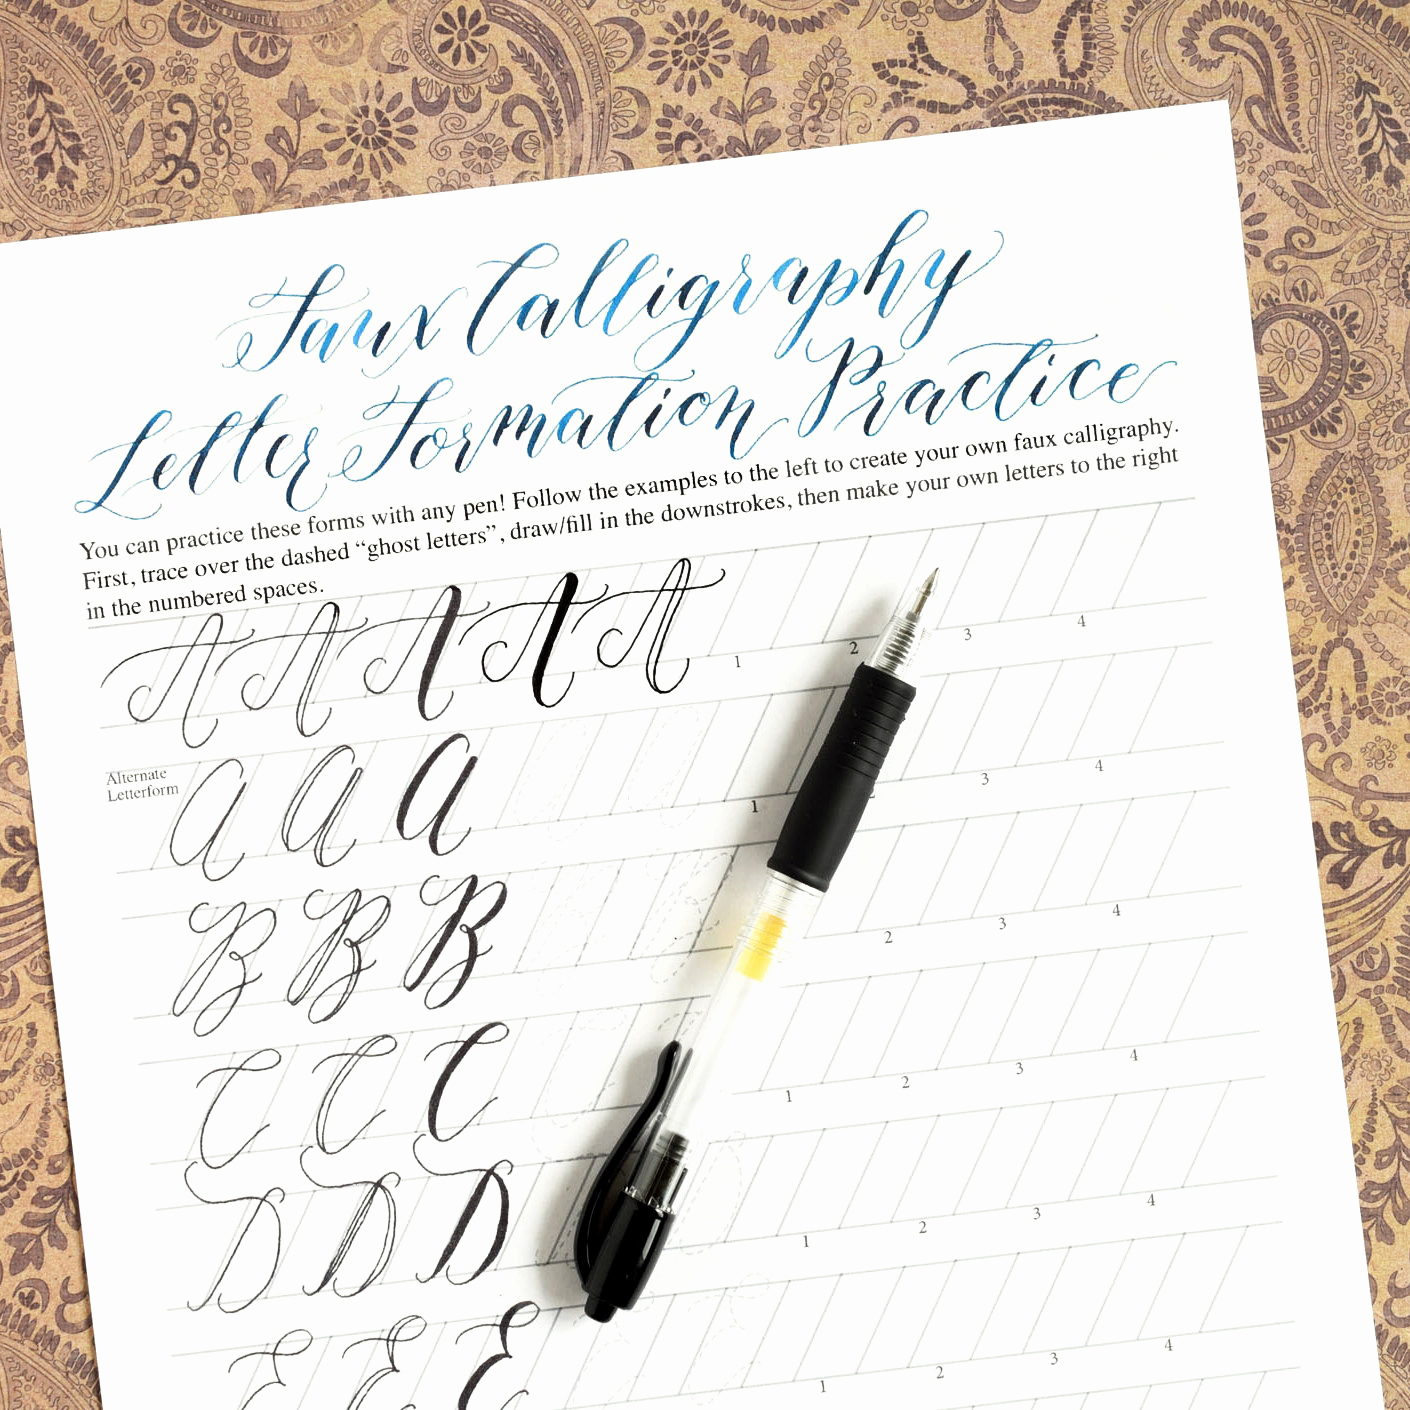 Free Calligraphy Worksheets Printable Lovely Printable Calligraphy Worksheets Kaitlin Style Learn